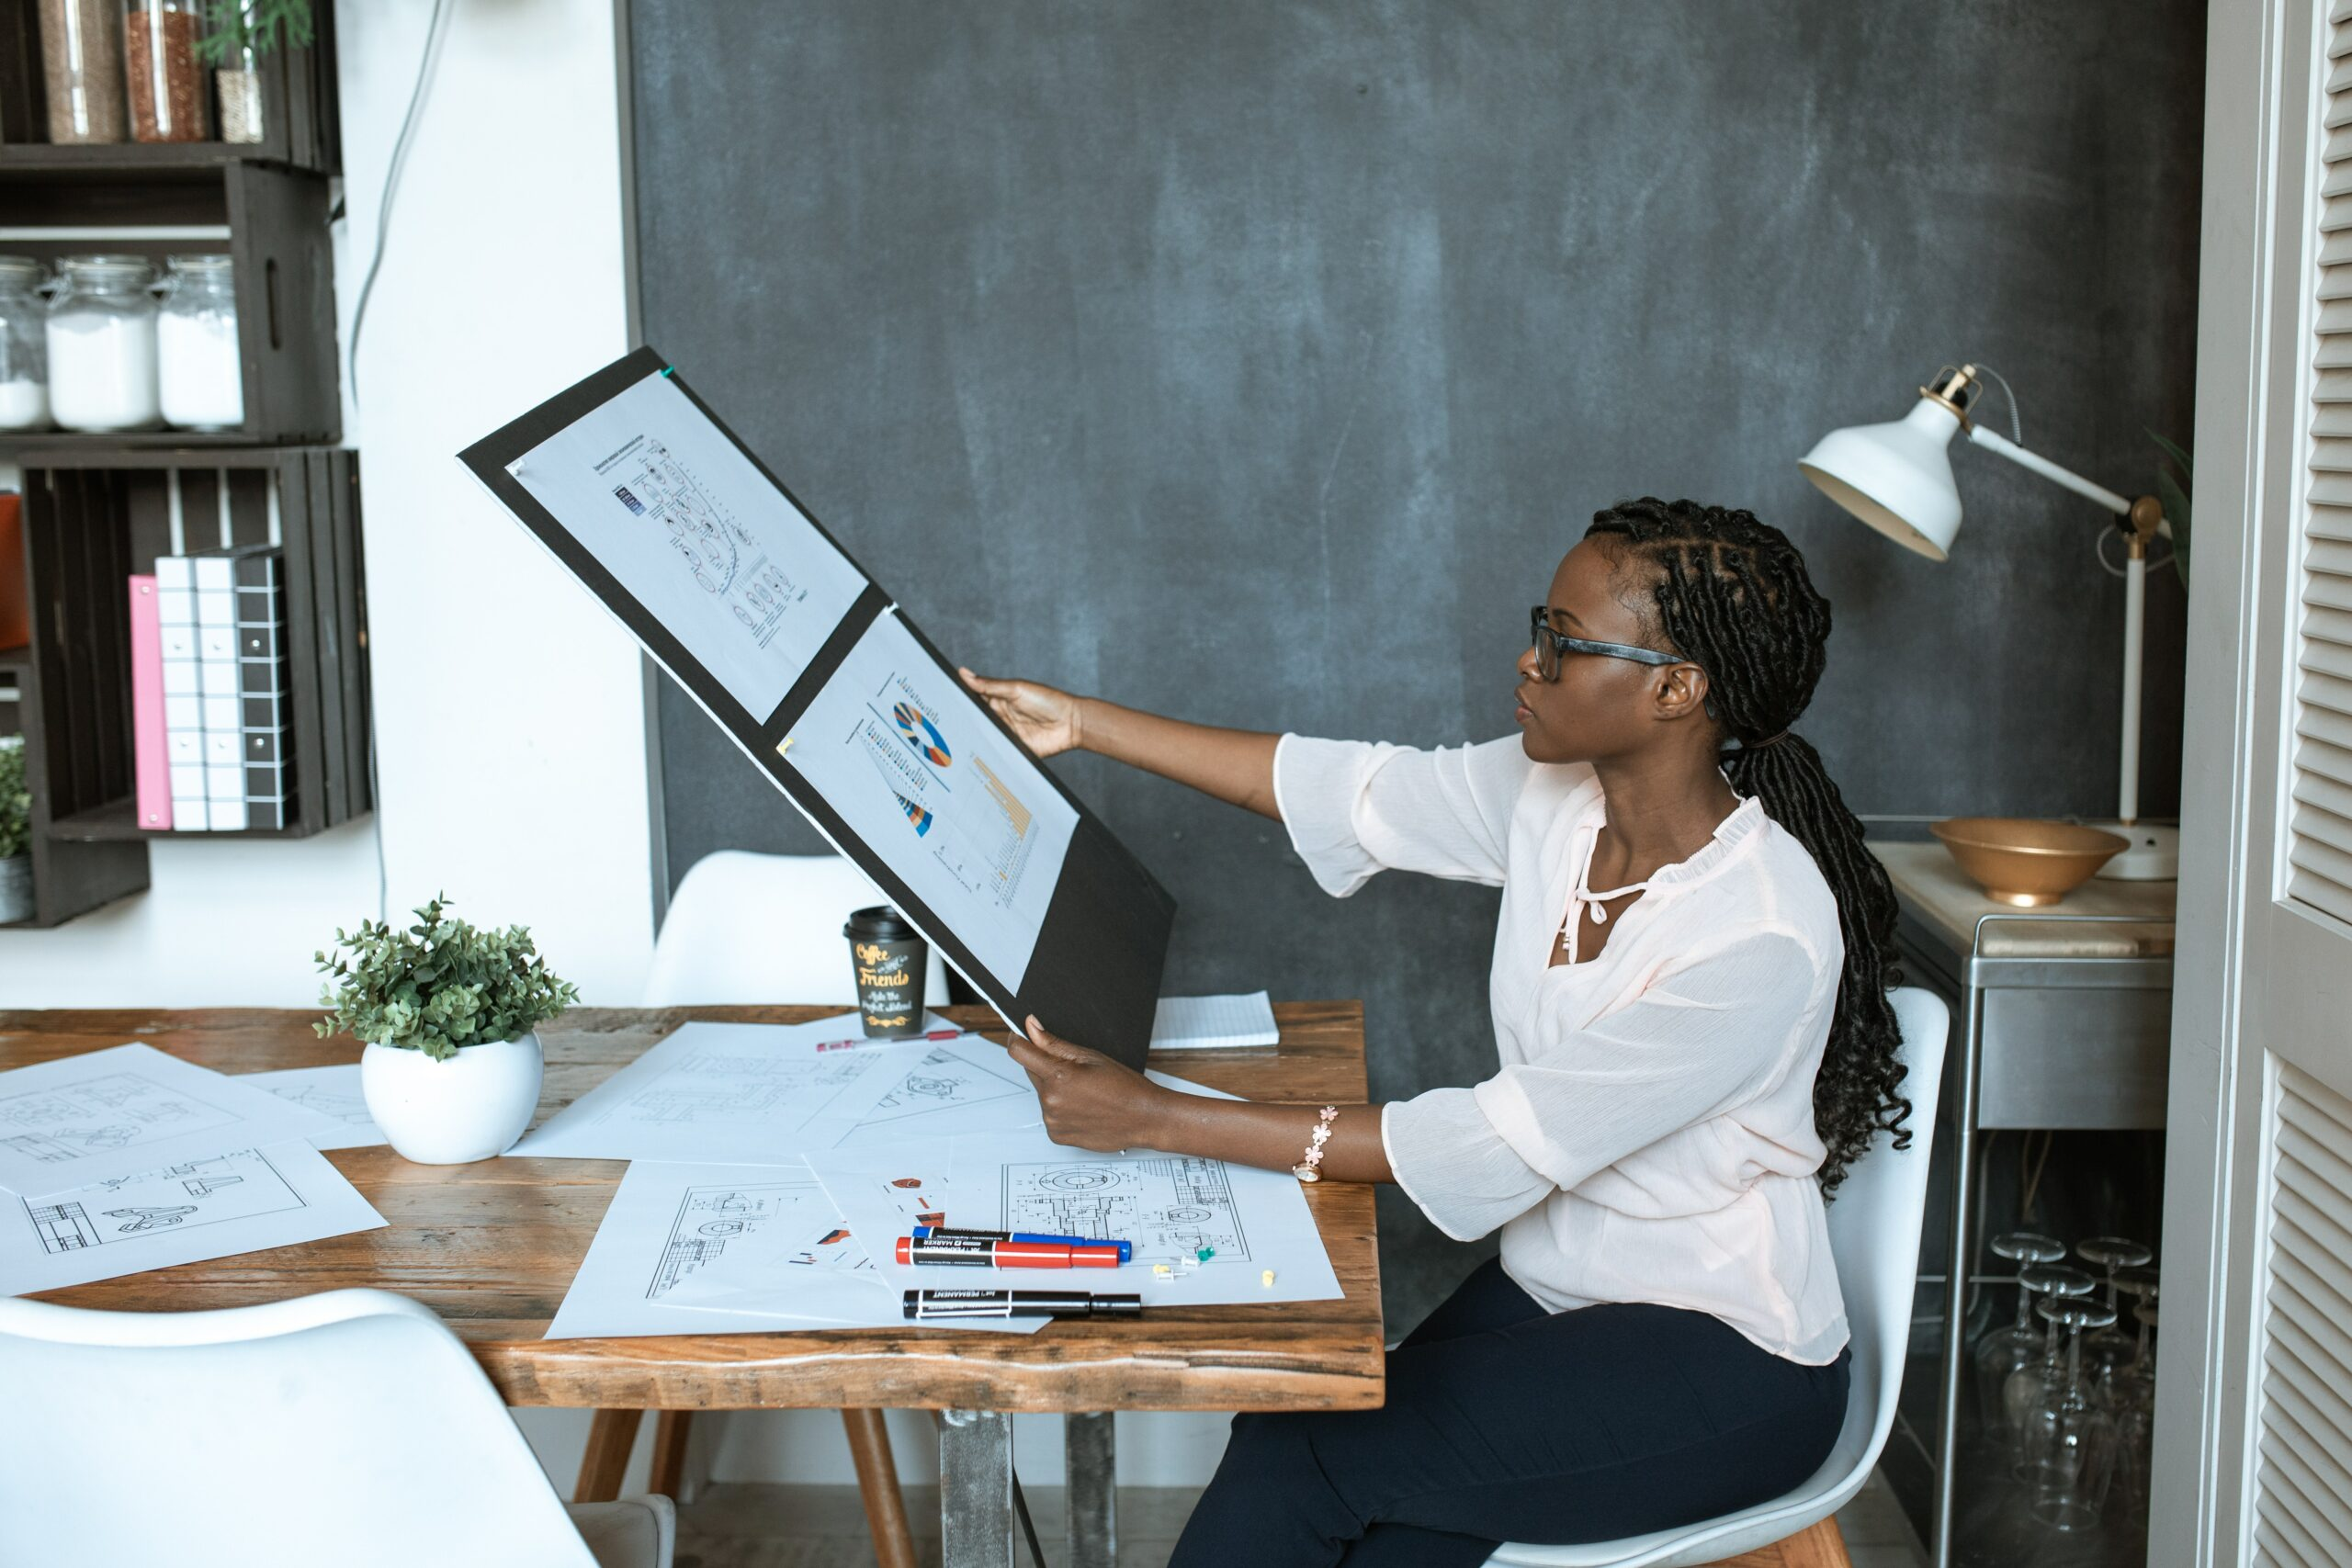 Woman sitting at a desk reviewing artwork which tells a story in a visual way